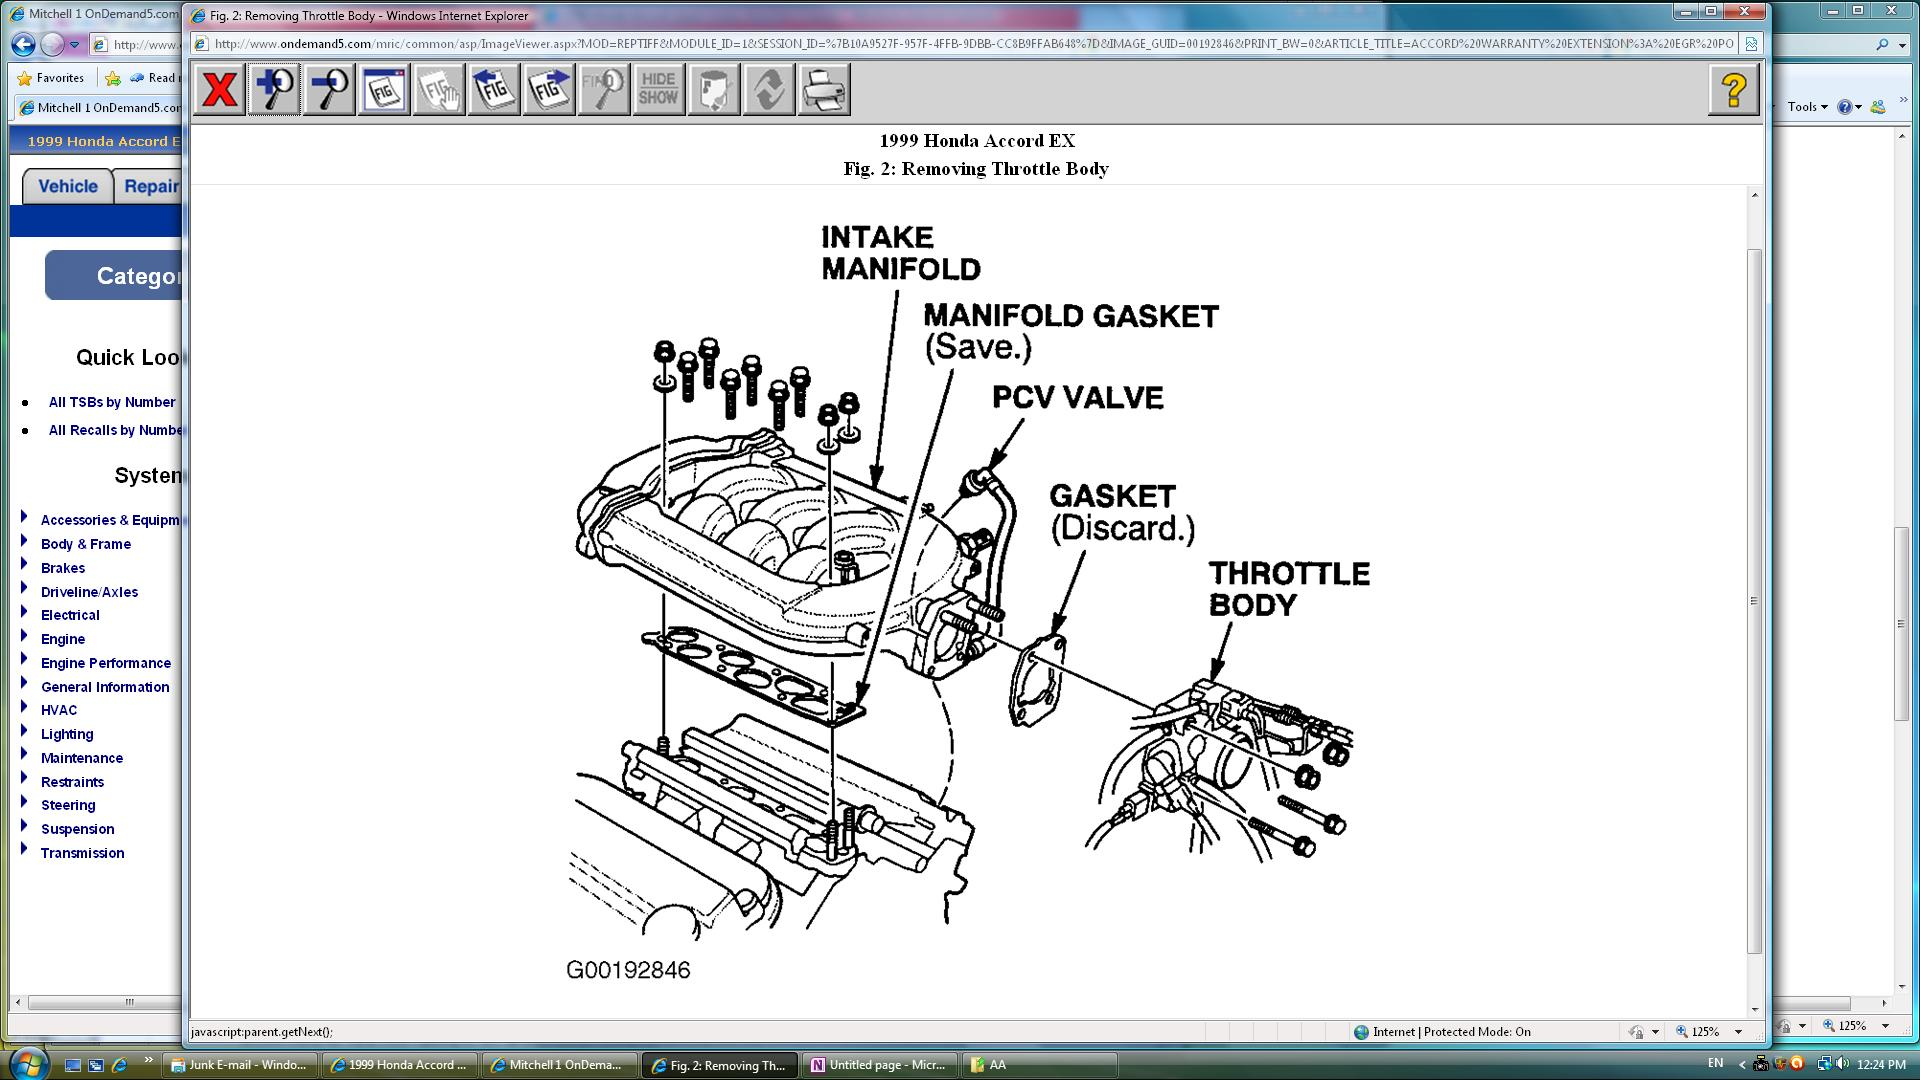 1999 Honda Accord Upper Intake Manifold Diagram Engine